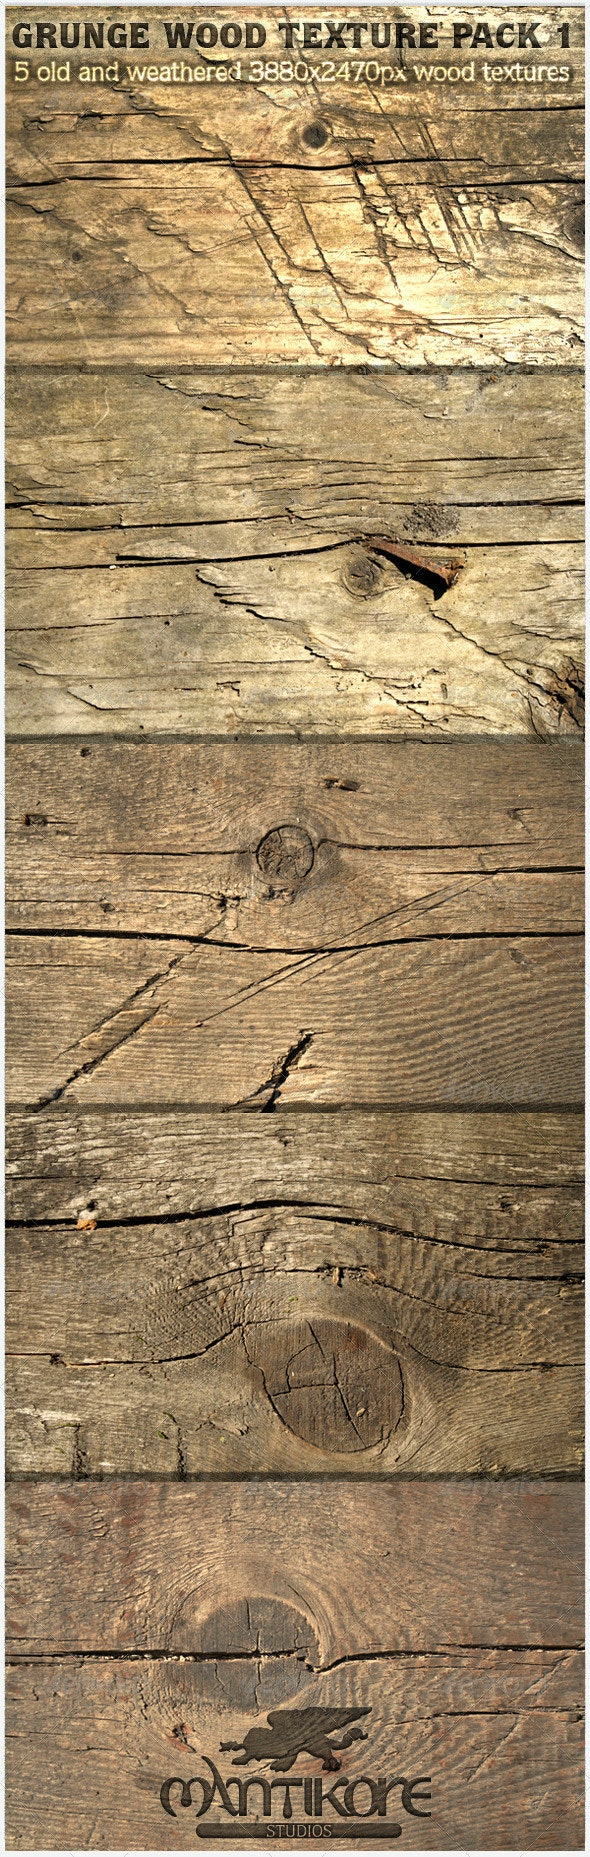 Grunge Wood Texture Pack 1 - Wood Textures